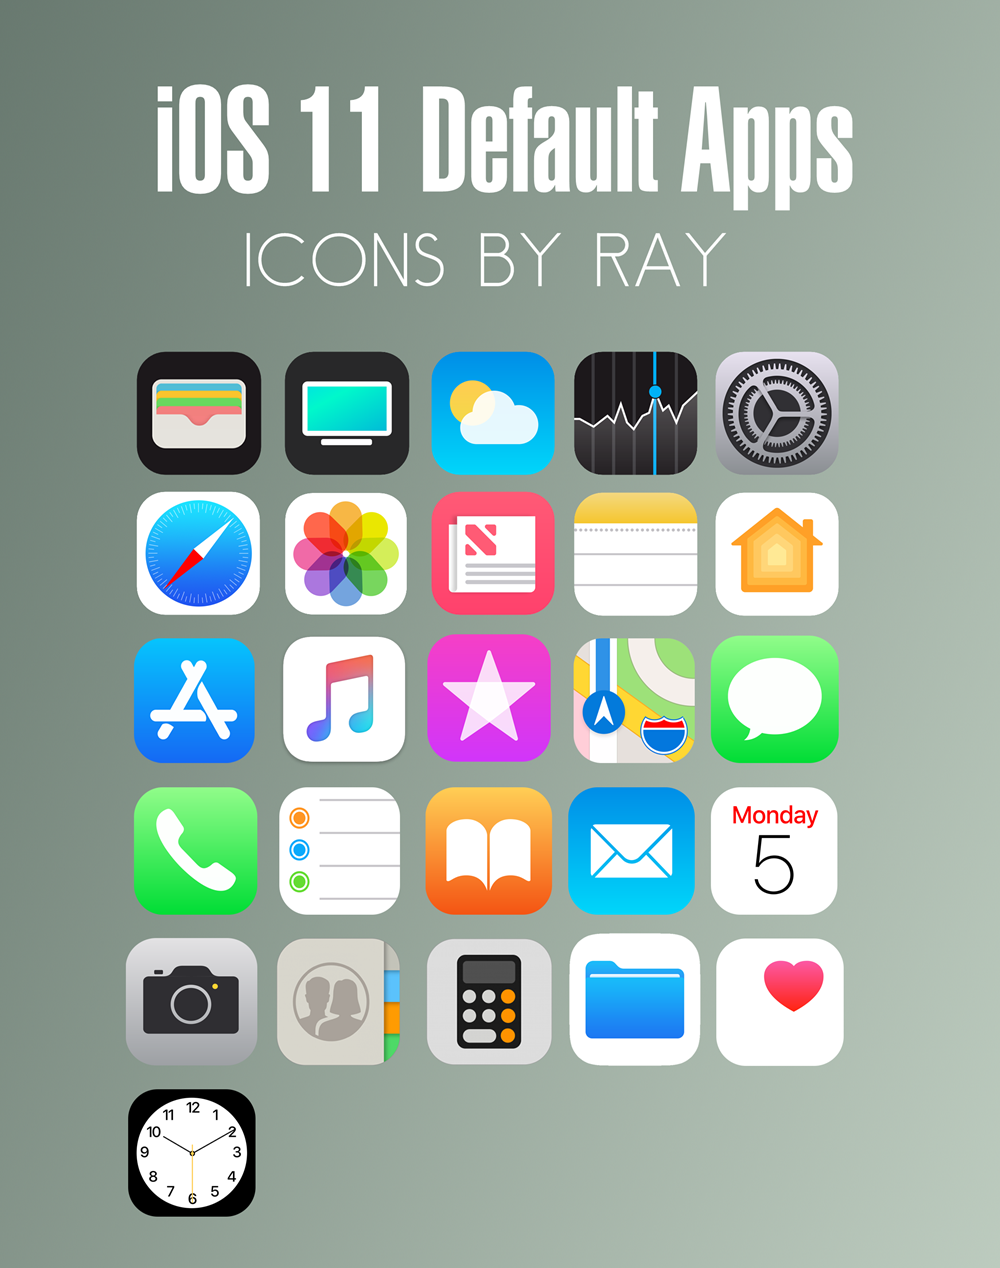 iOS 11 Default App Icons by Ray by Raiiy on DeviantArt.